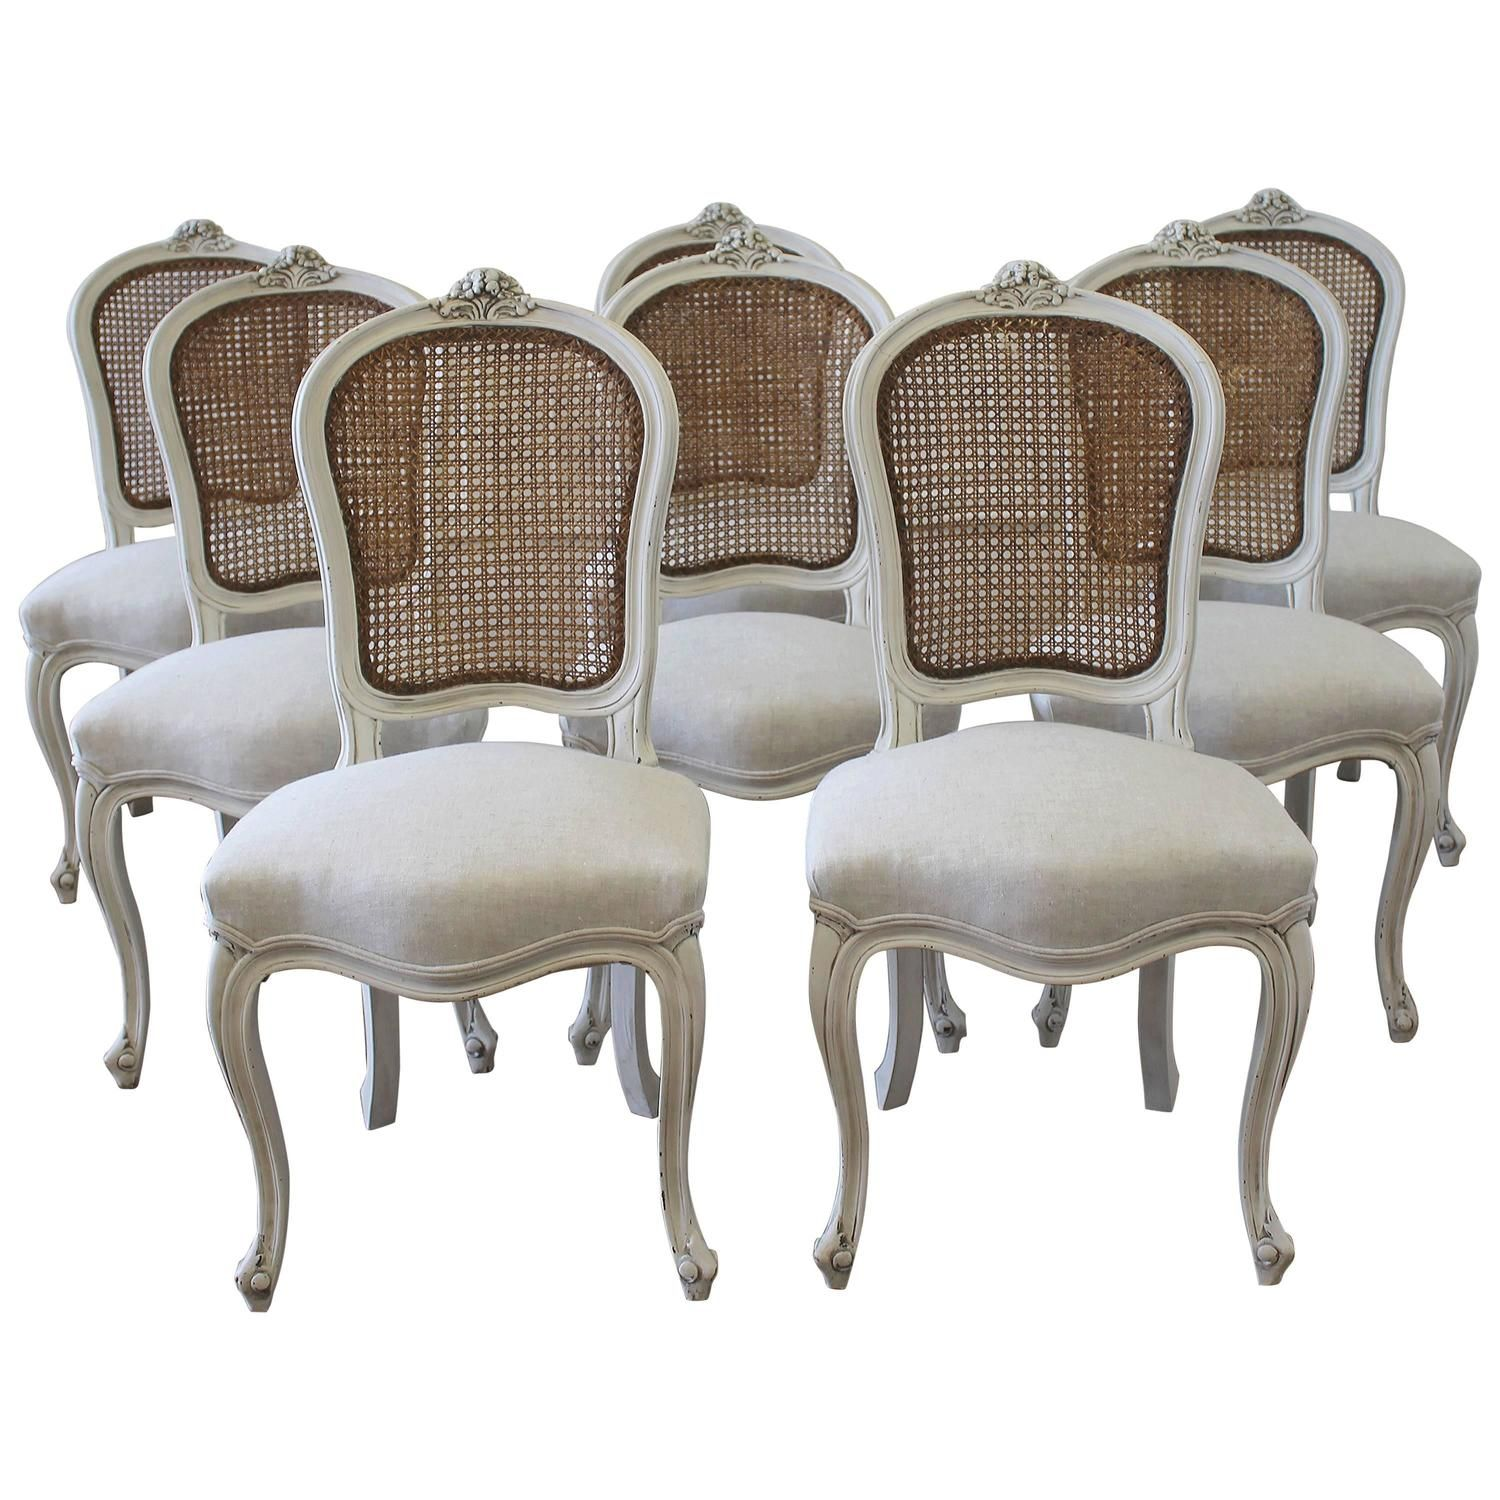 Pin By Erica Cain Smith On For The Home French Dining Chairs